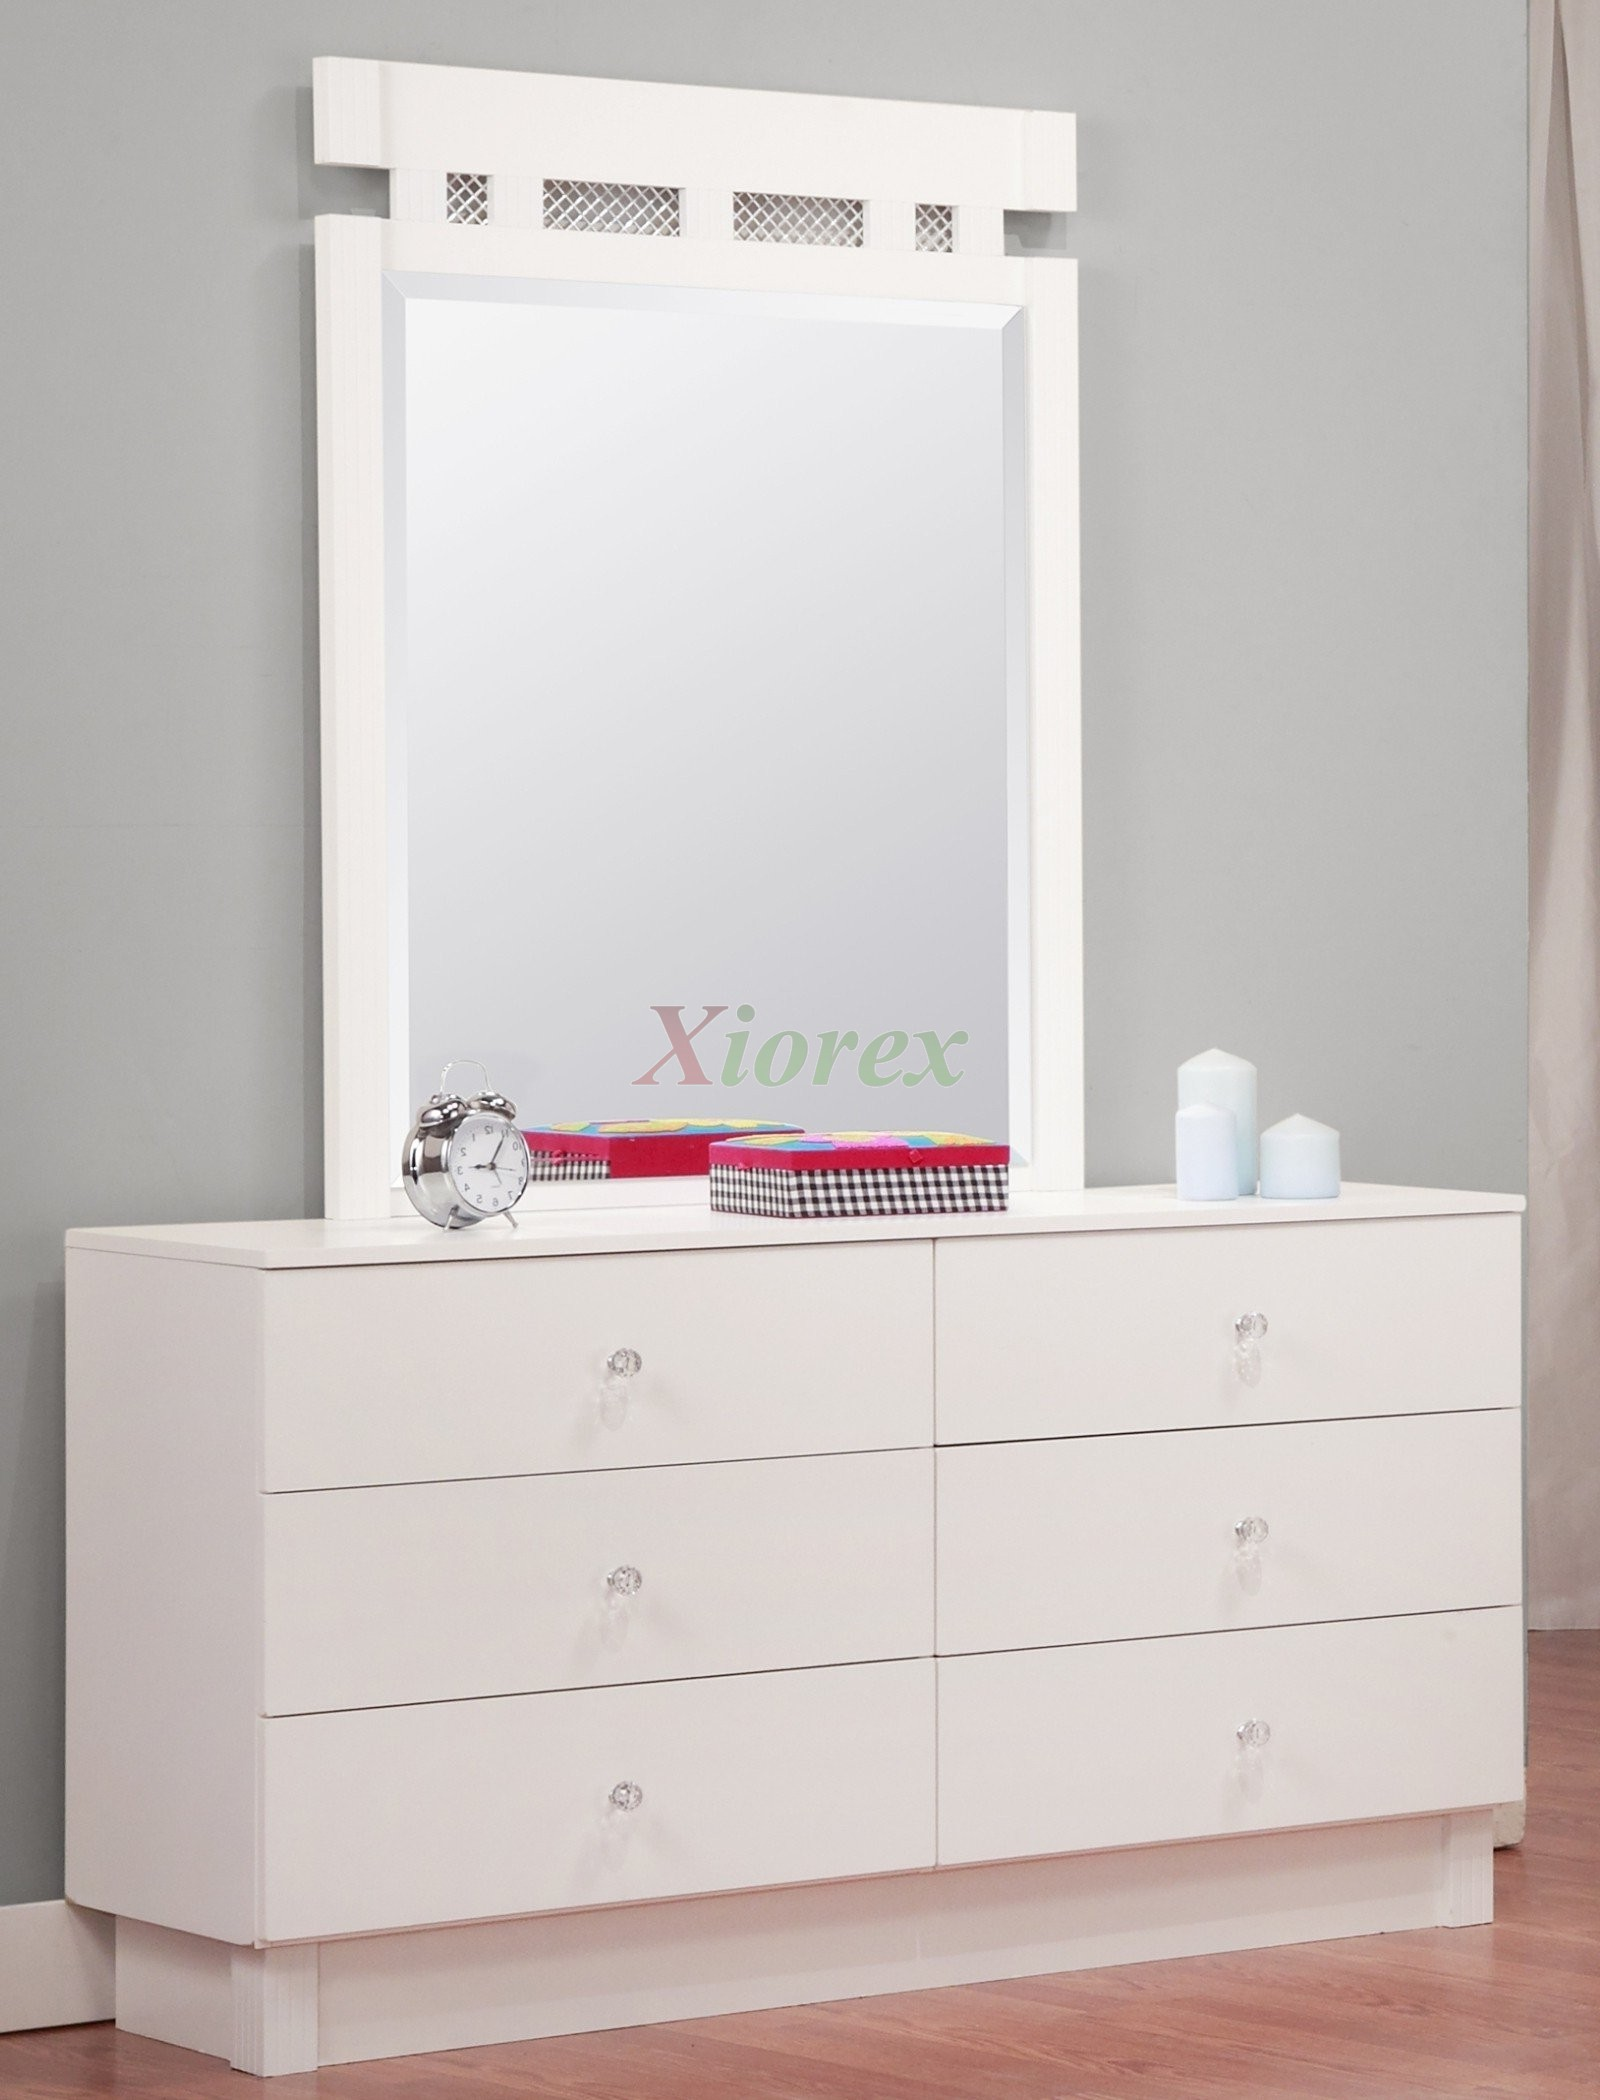 dresser world nightstand bedding sale cheap queen bedroom out full sets dressers insight luxury set beautiful this of for black and most